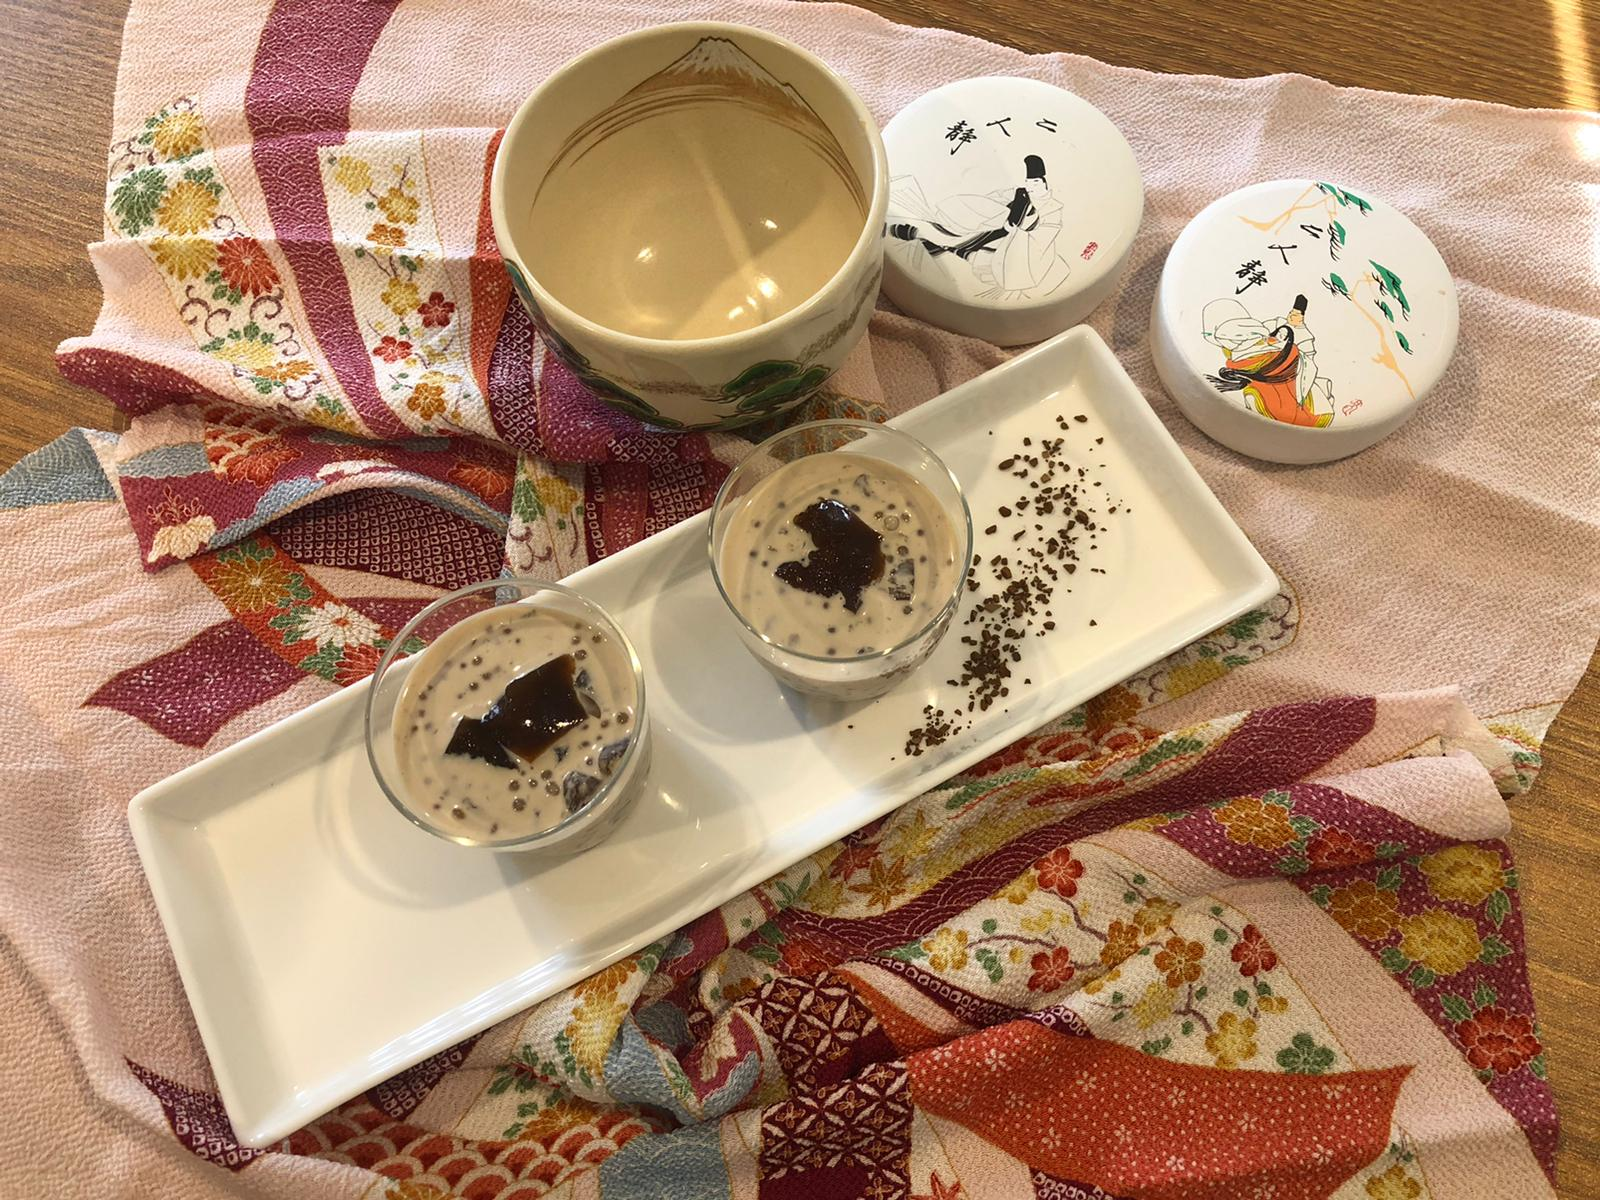 Sueda's Japanese Sweet Tapioca with Coffee Jelly